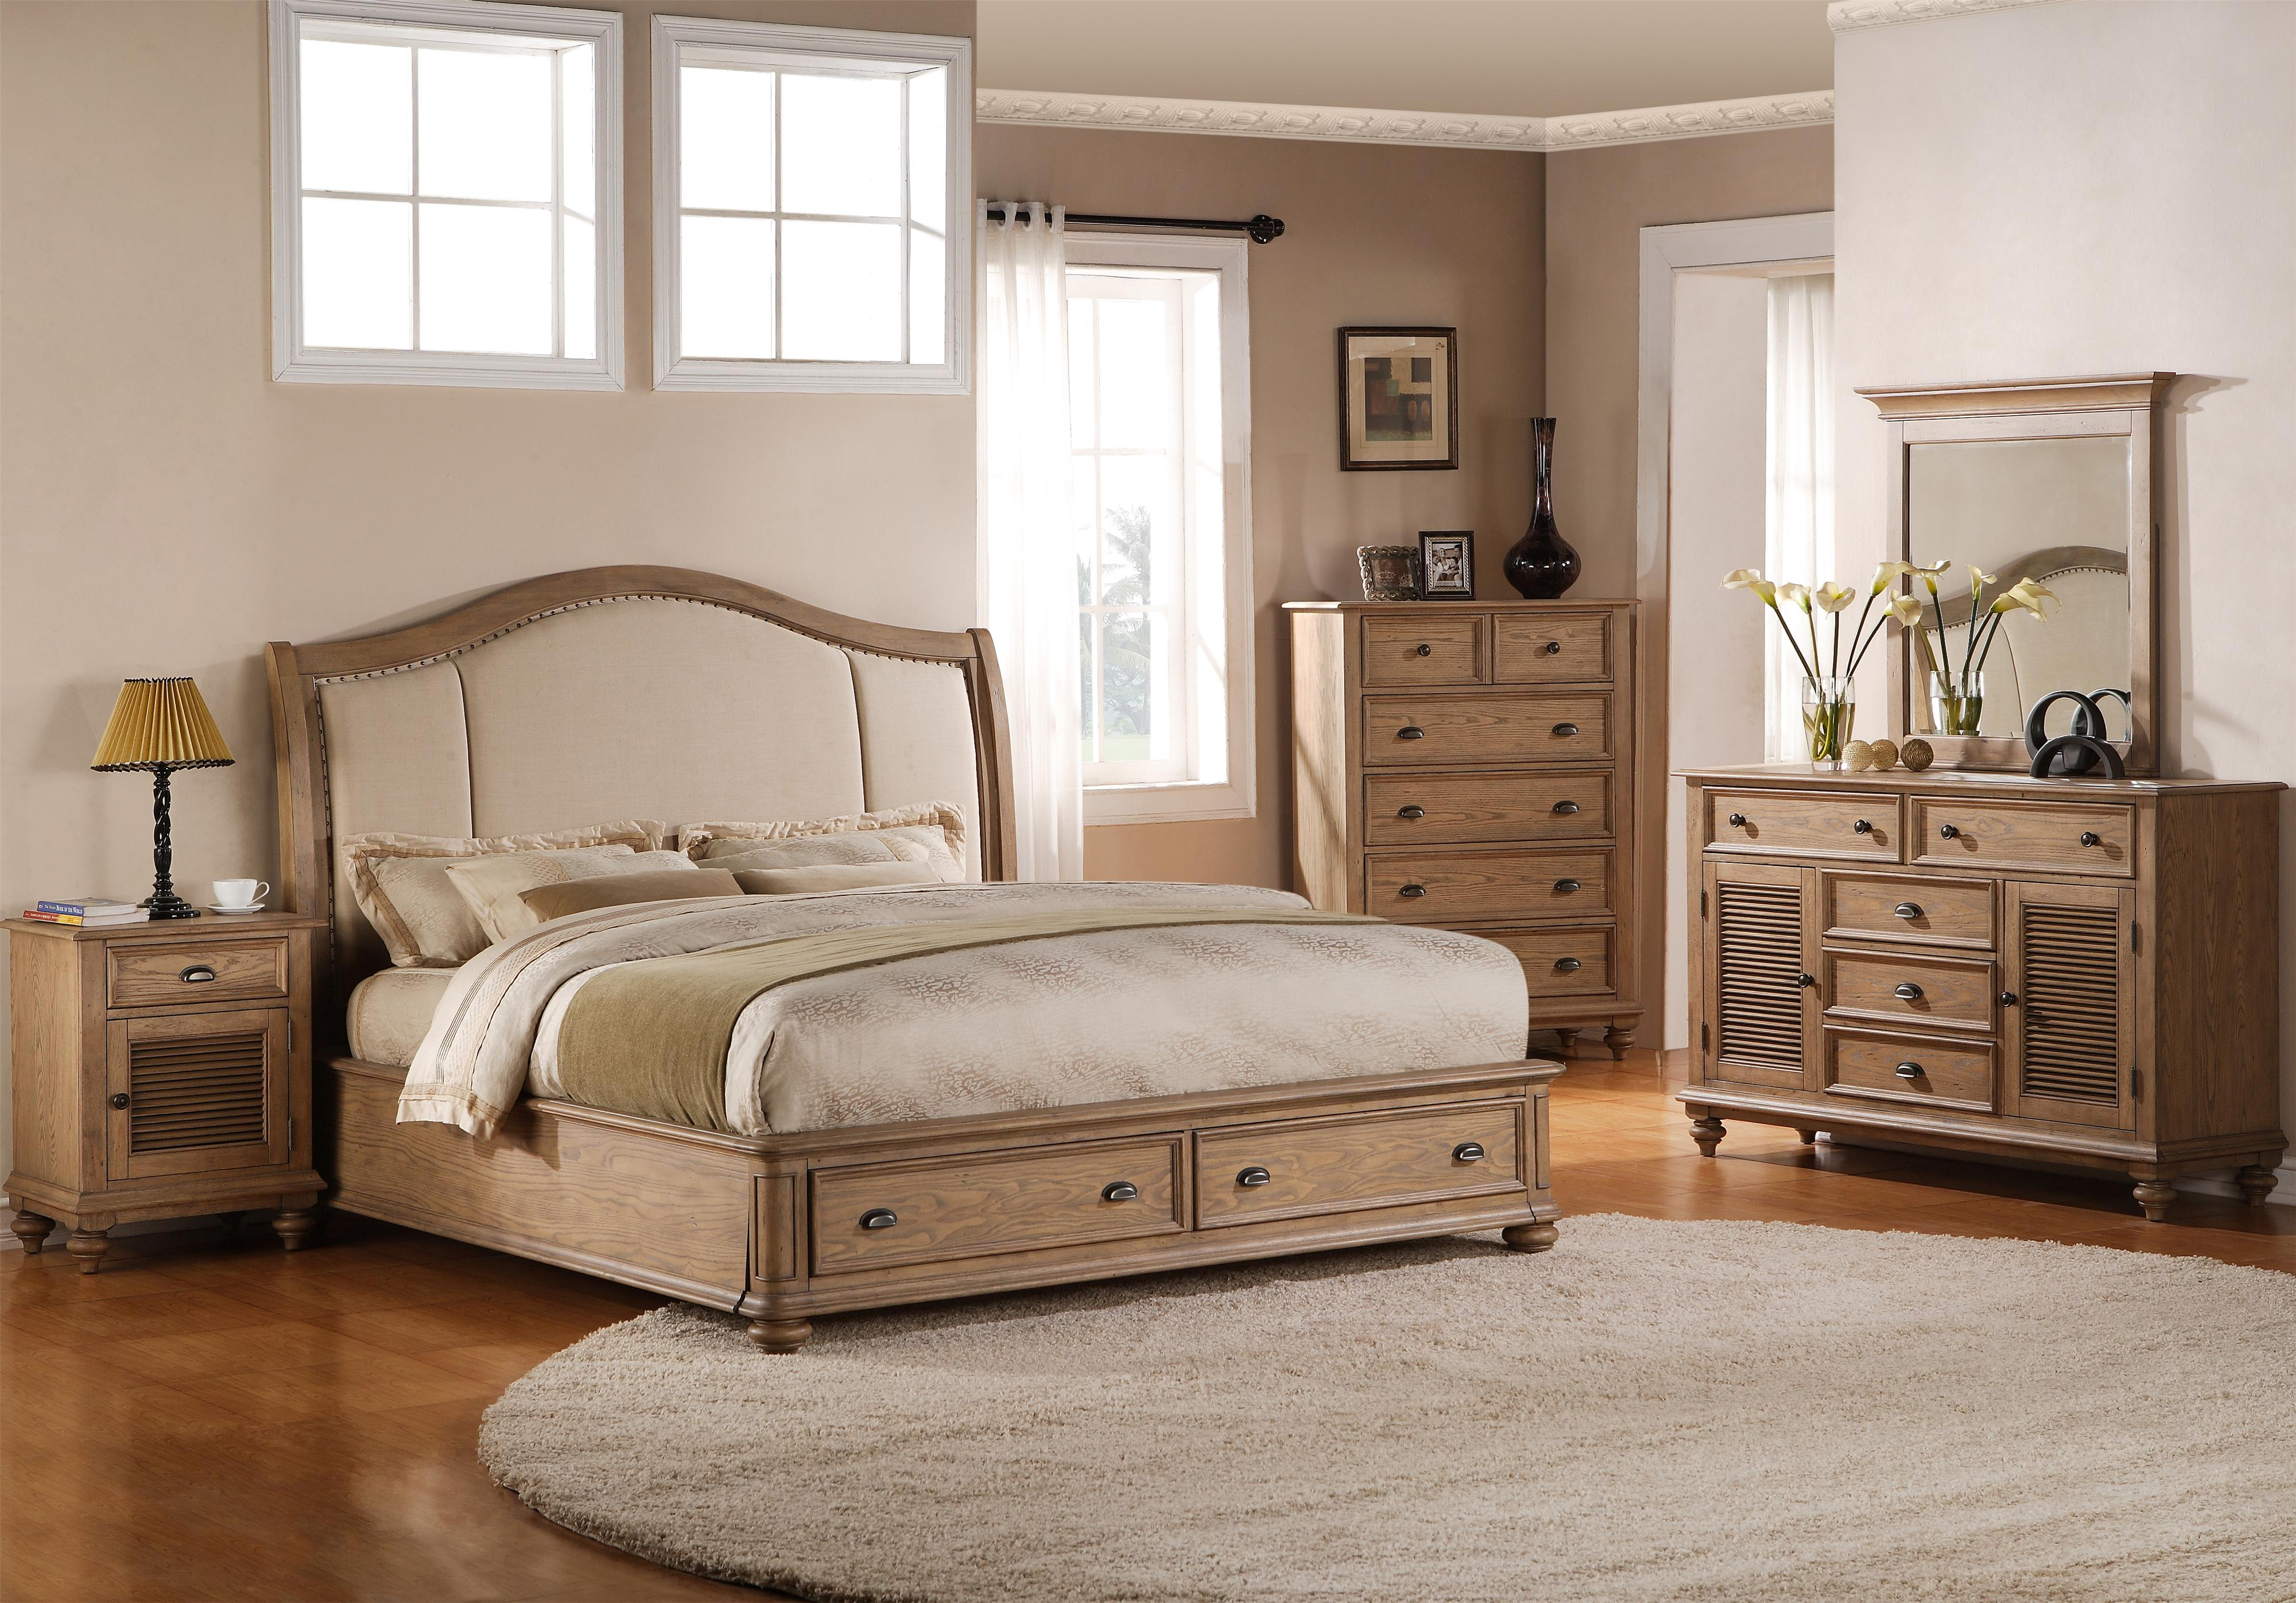 california king upholstered headboard bed with storage footboard california king upholstered bed with storage